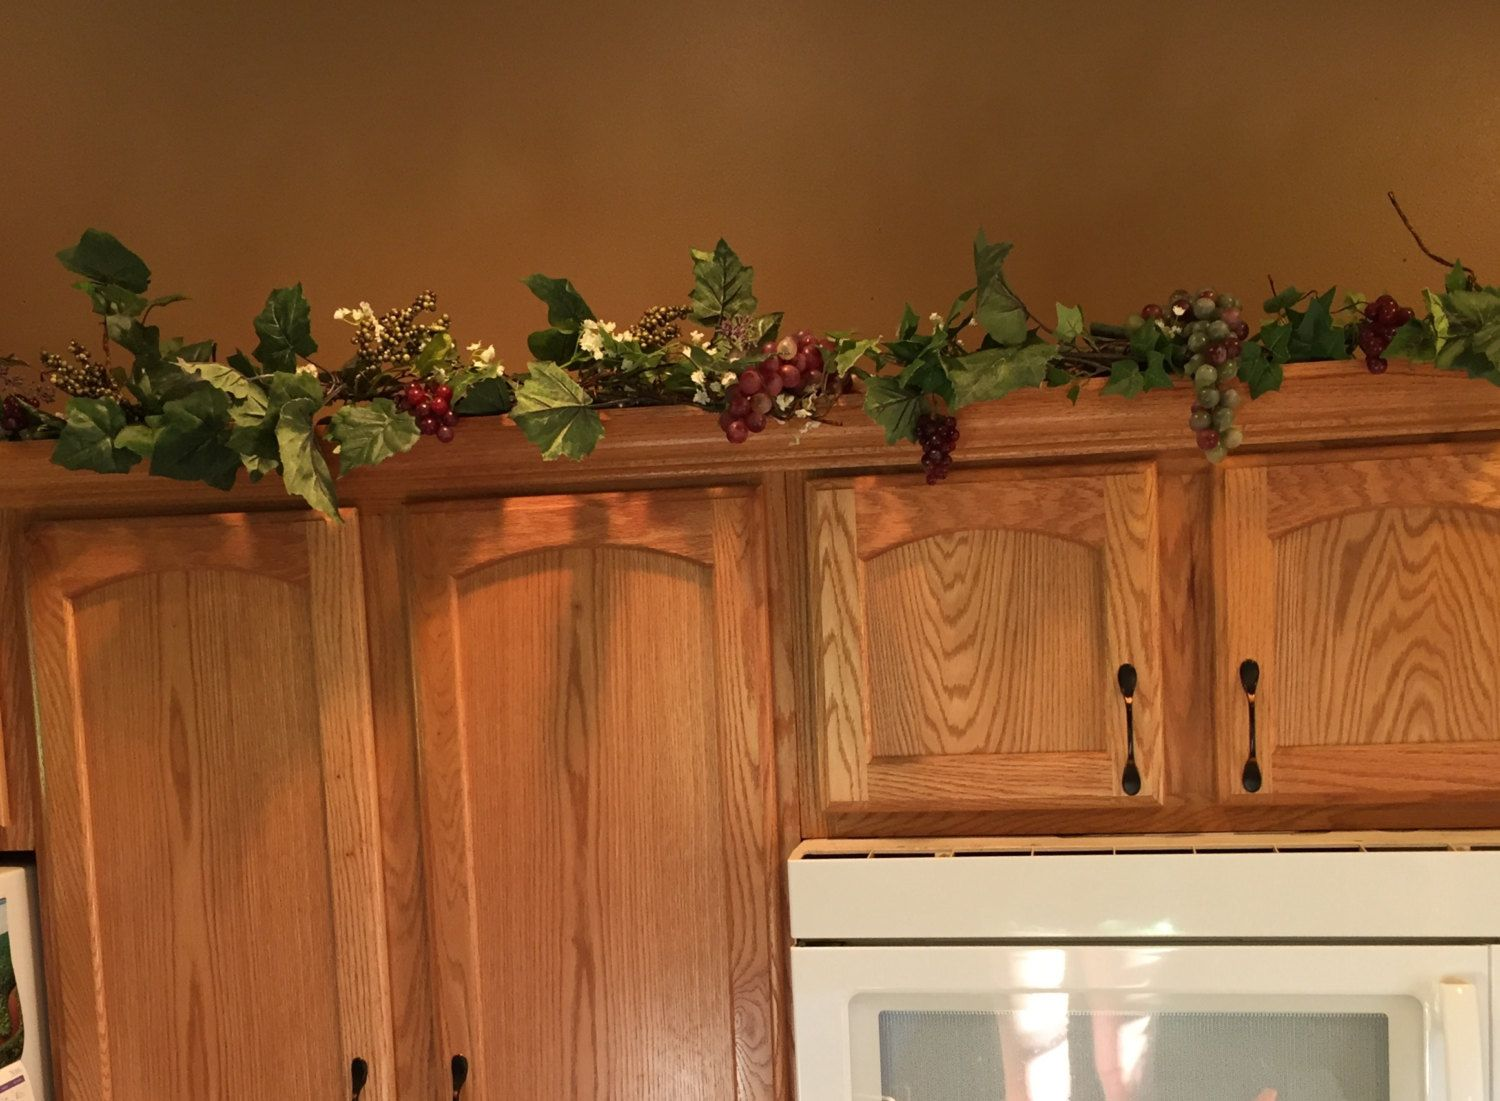 This 6ft Swag Is Filled With Premium Silk Greenery Ivy Berries Grapes And Vines It Has Small Cr Kitchen Cabinets Decor Top Of Cabinets Top Kitchen Cabinets